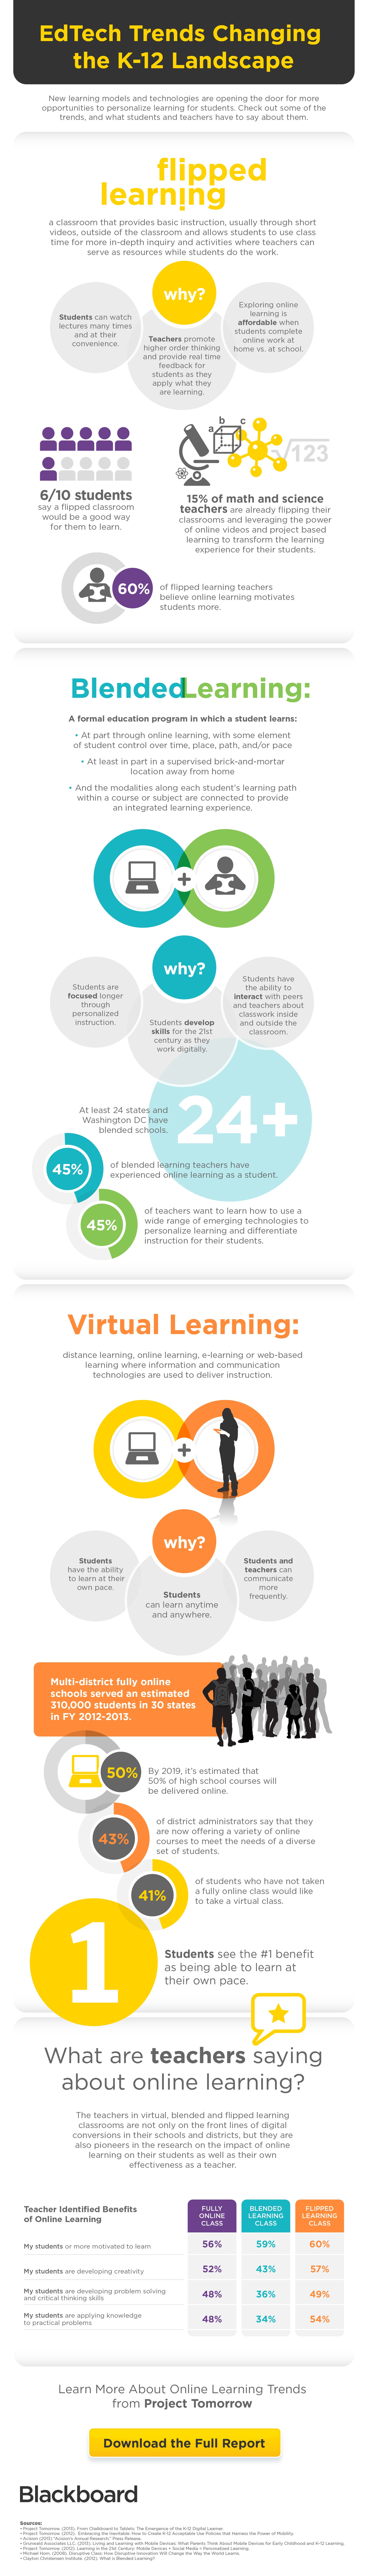 EdTech Trends Changing the K12 Landscape Infographic